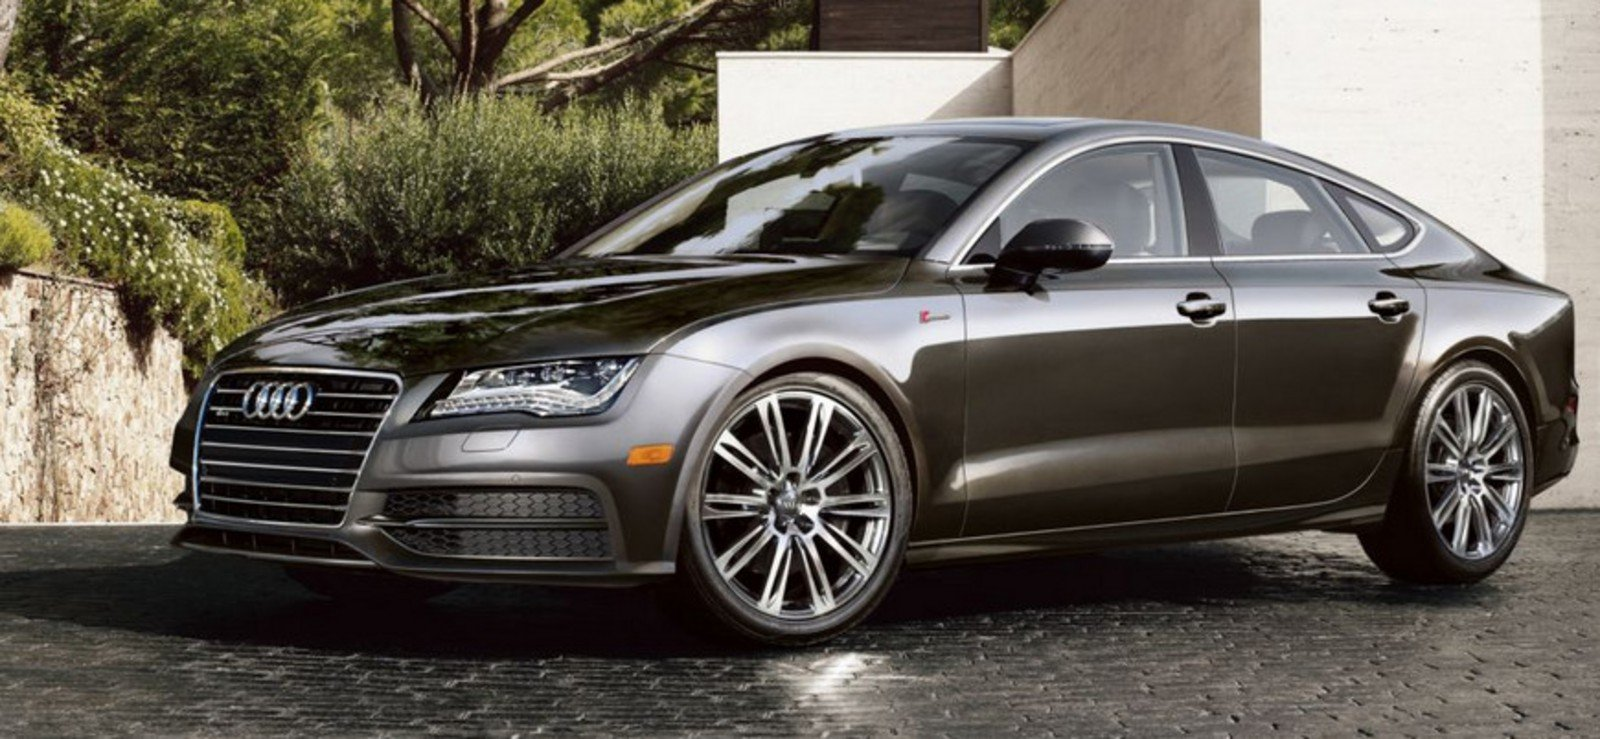 2014 audi a7 review top speed. Black Bedroom Furniture Sets. Home Design Ideas